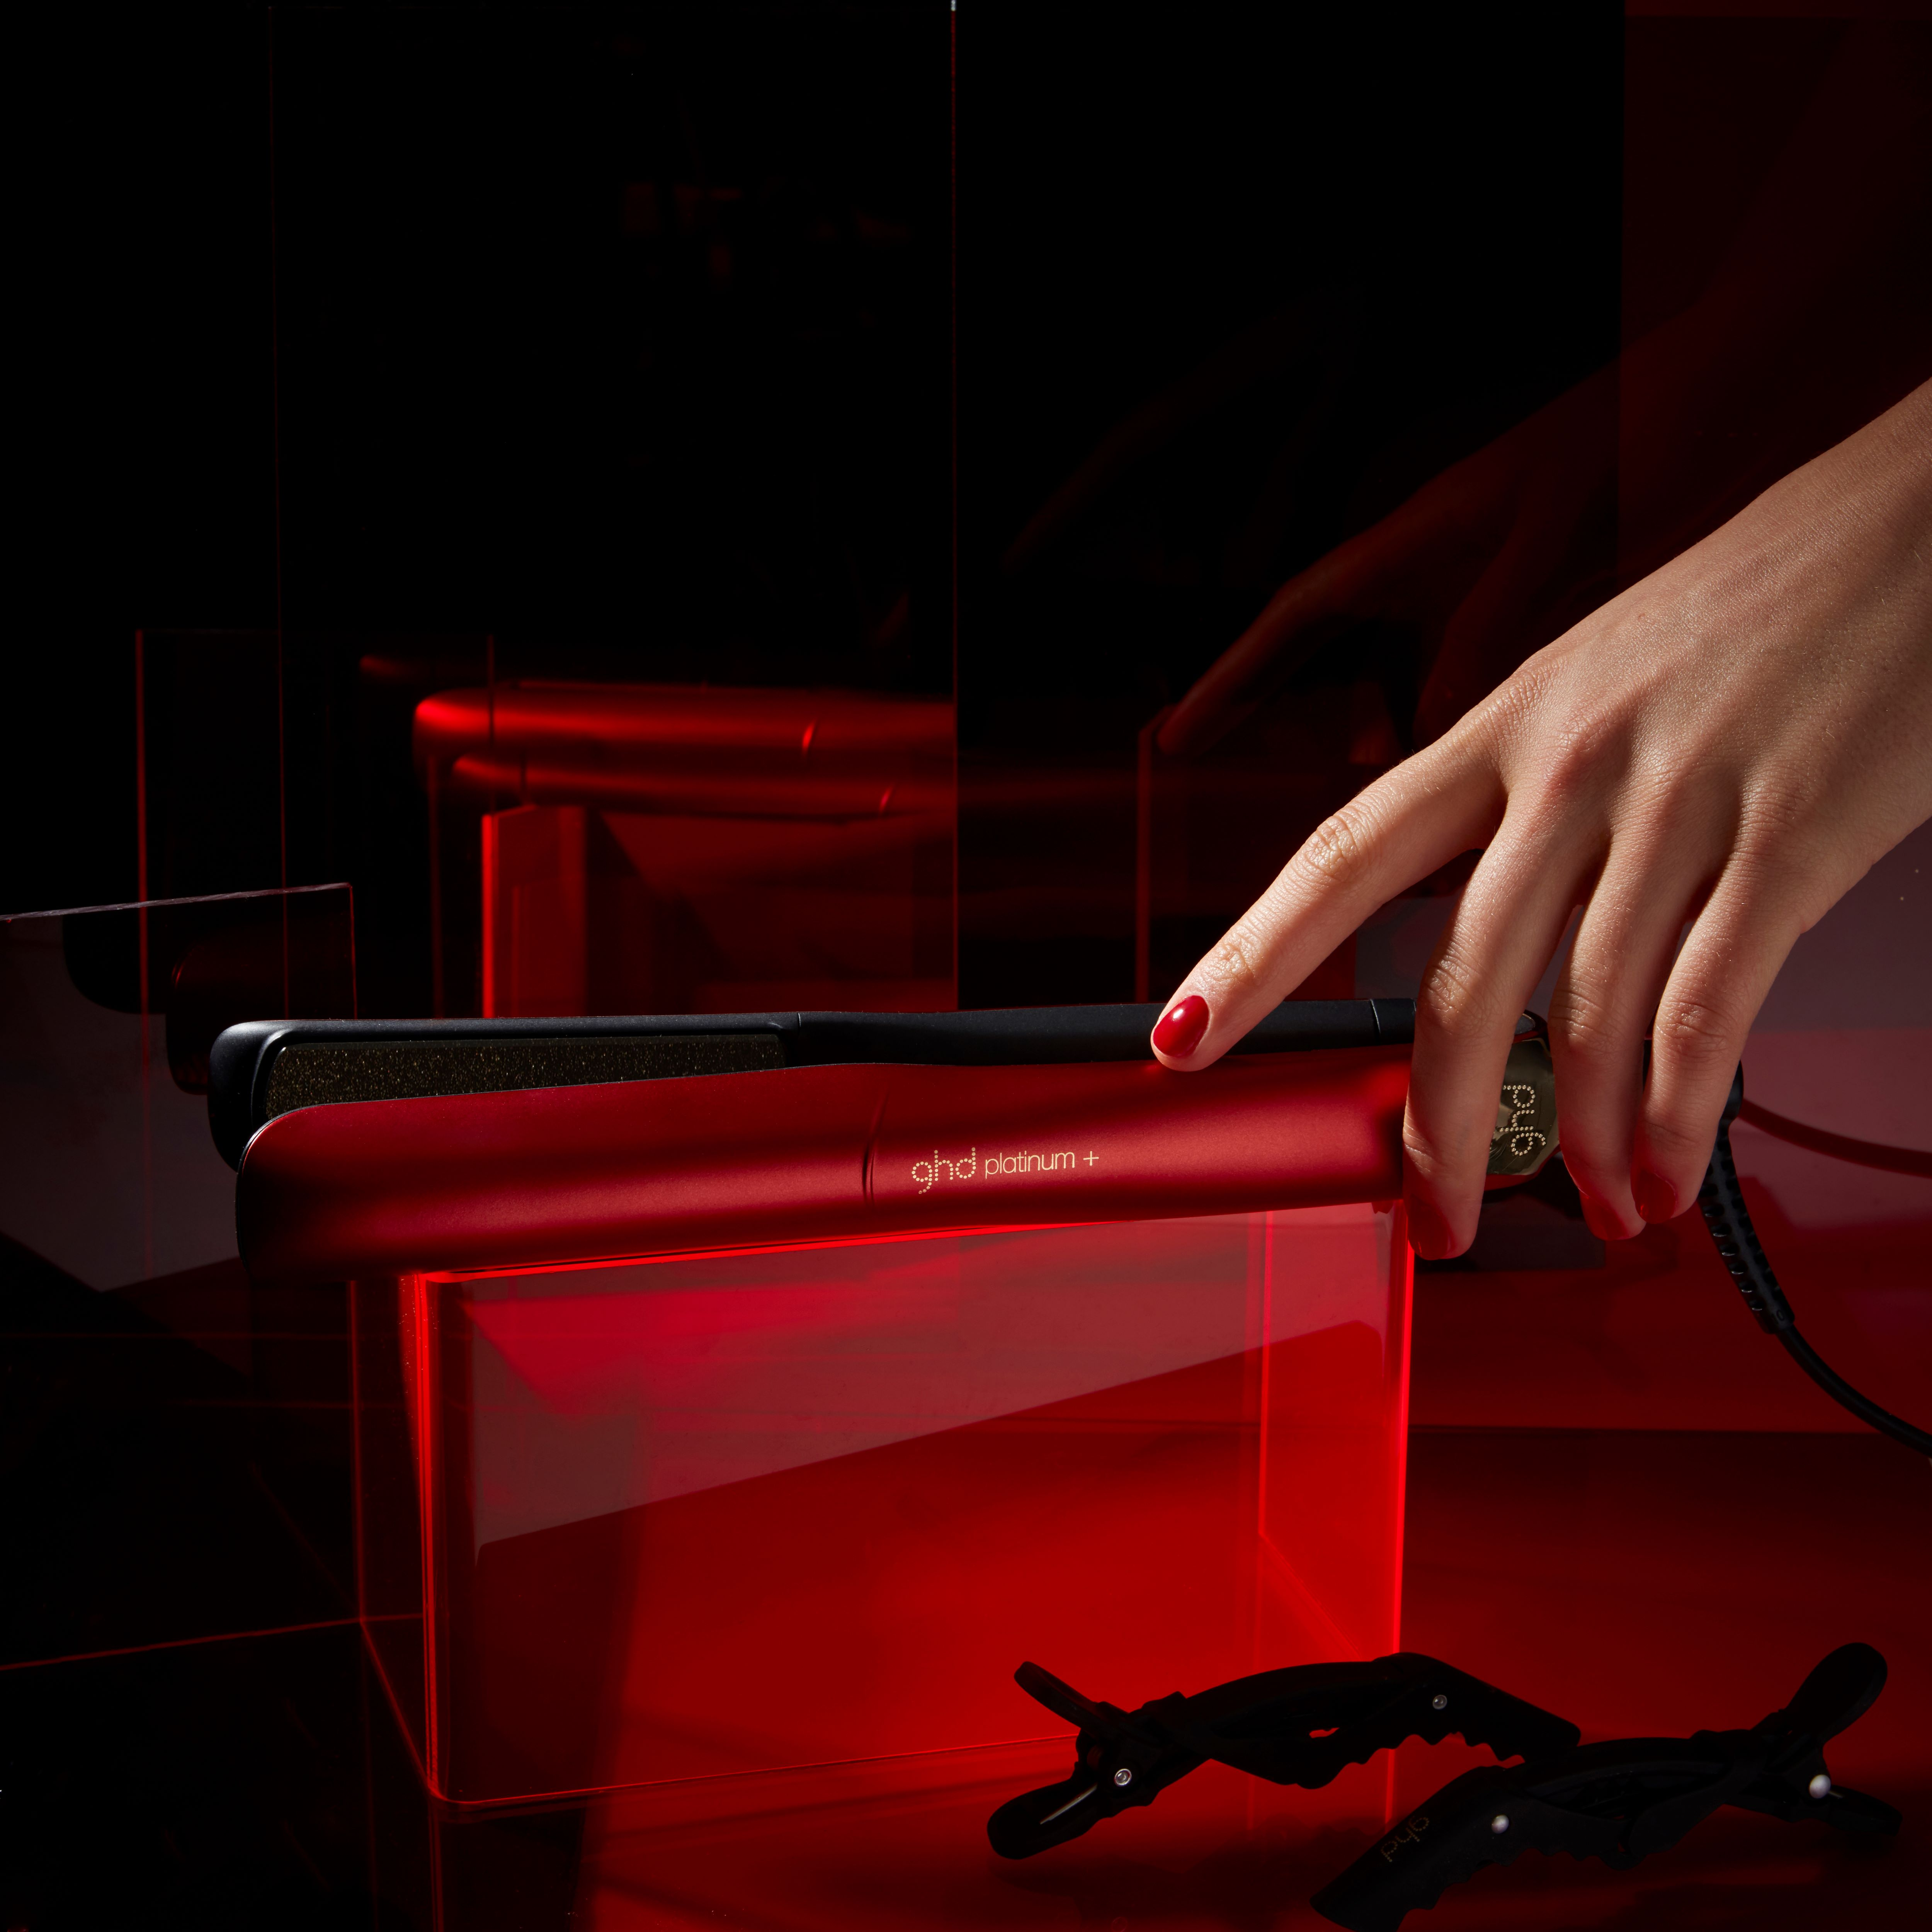 GHD Scarlet Limited Edition;Thing of love